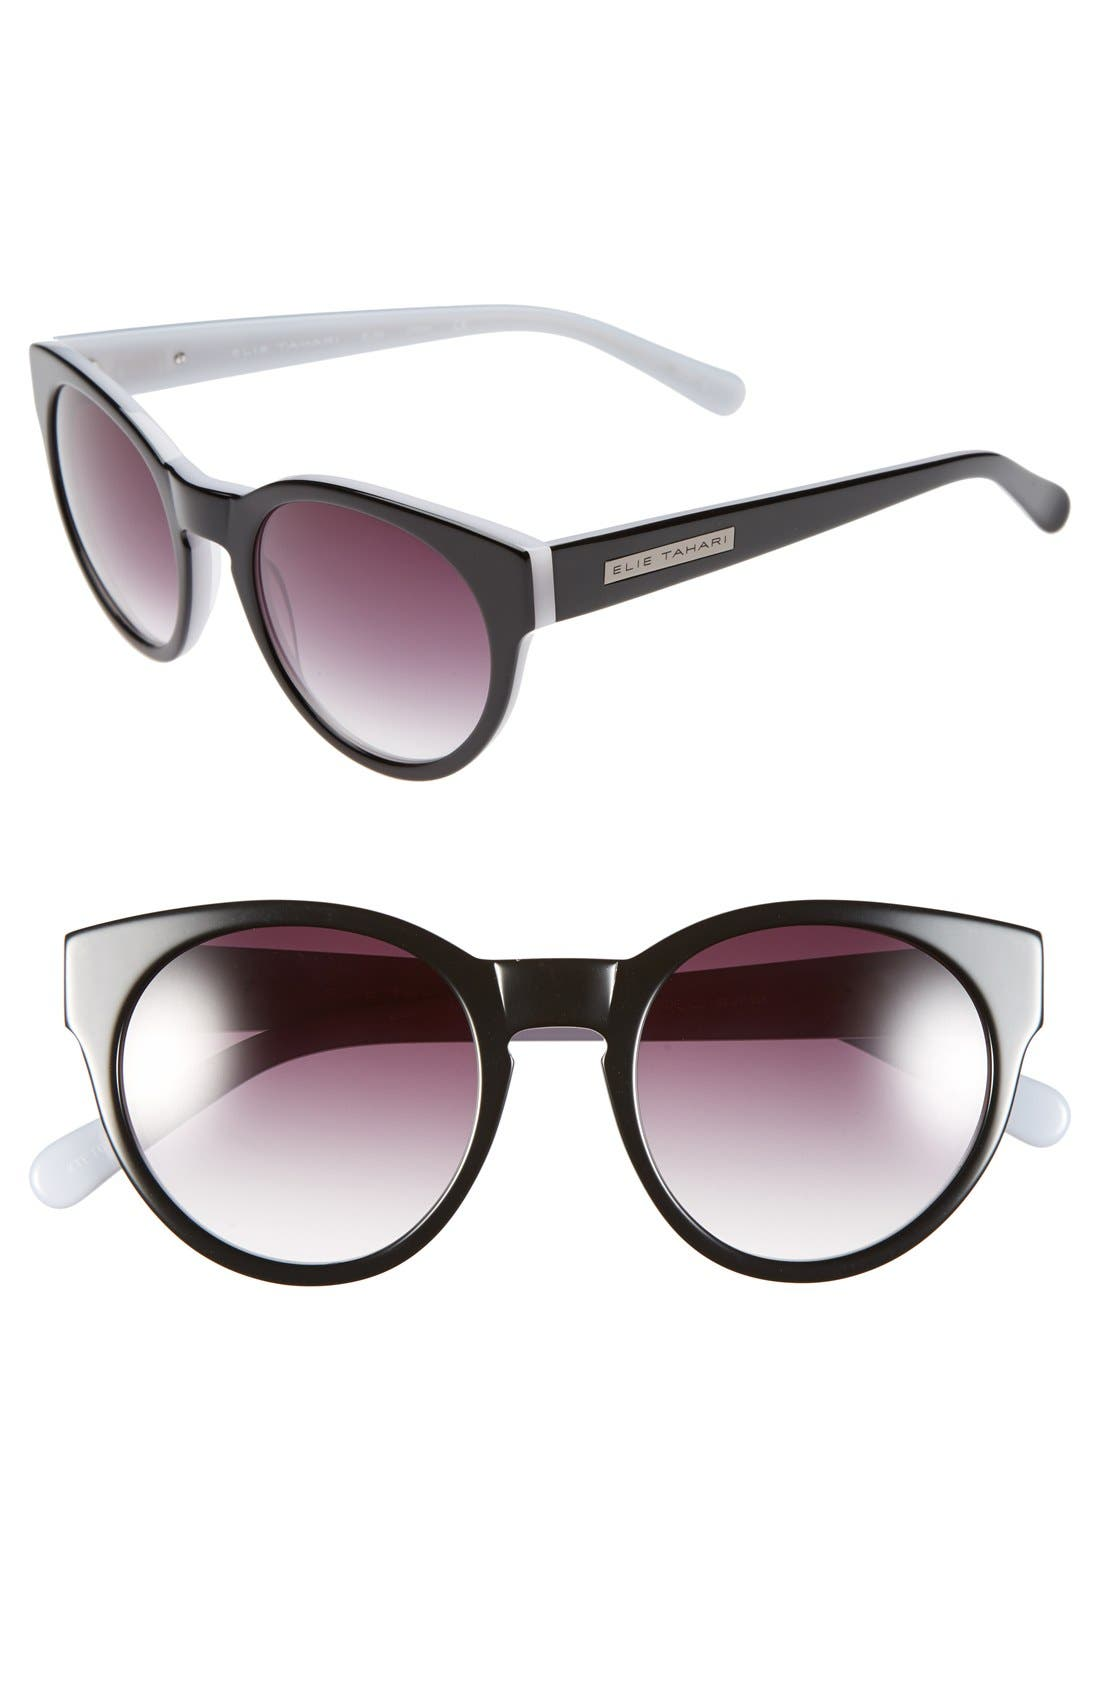 Main Image - Elie Tahari 52mm Retro Sunglasses